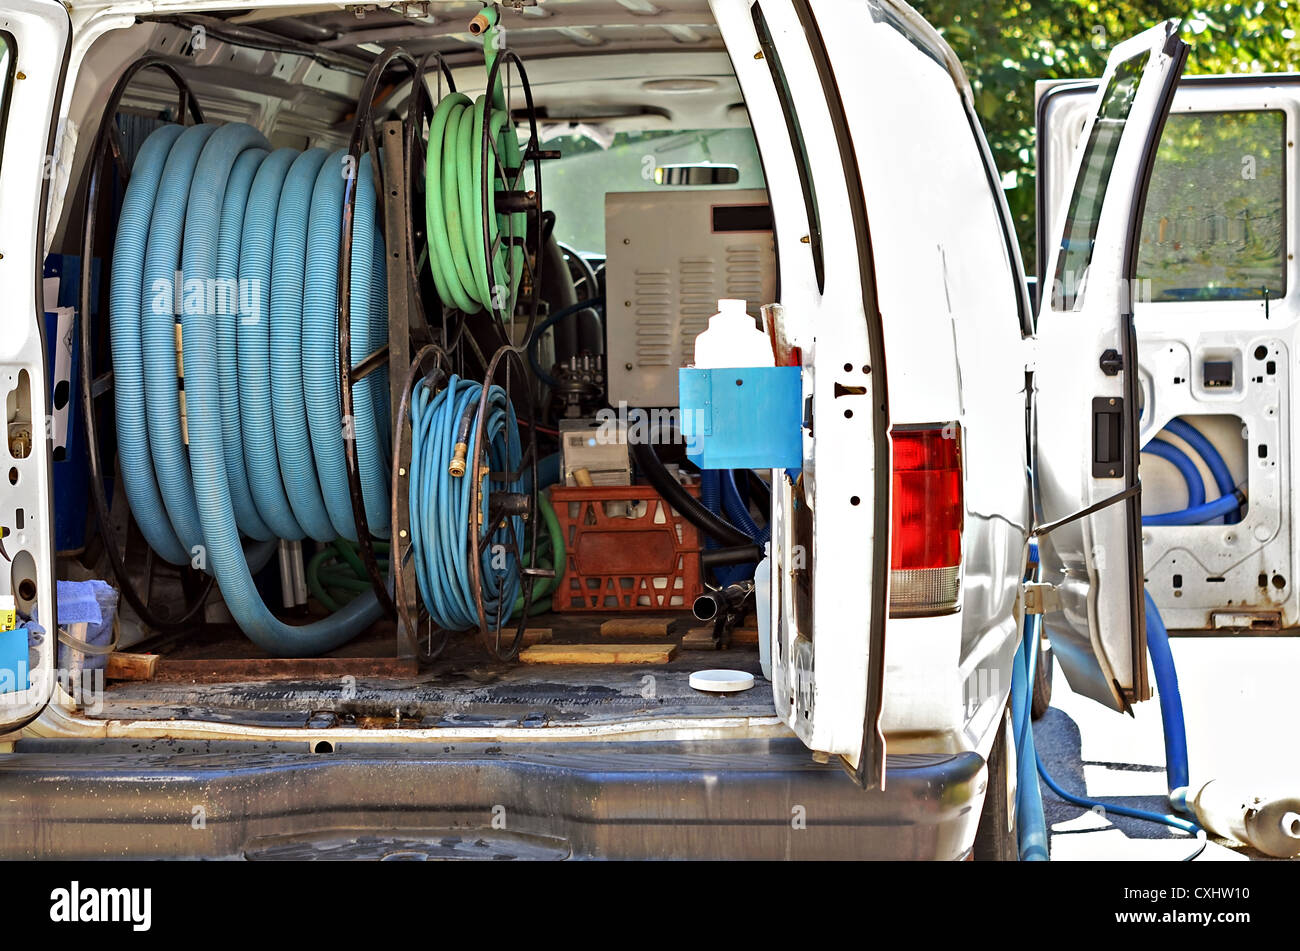 A white van with hoses and equipment for carpet cleaning. - Stock Image